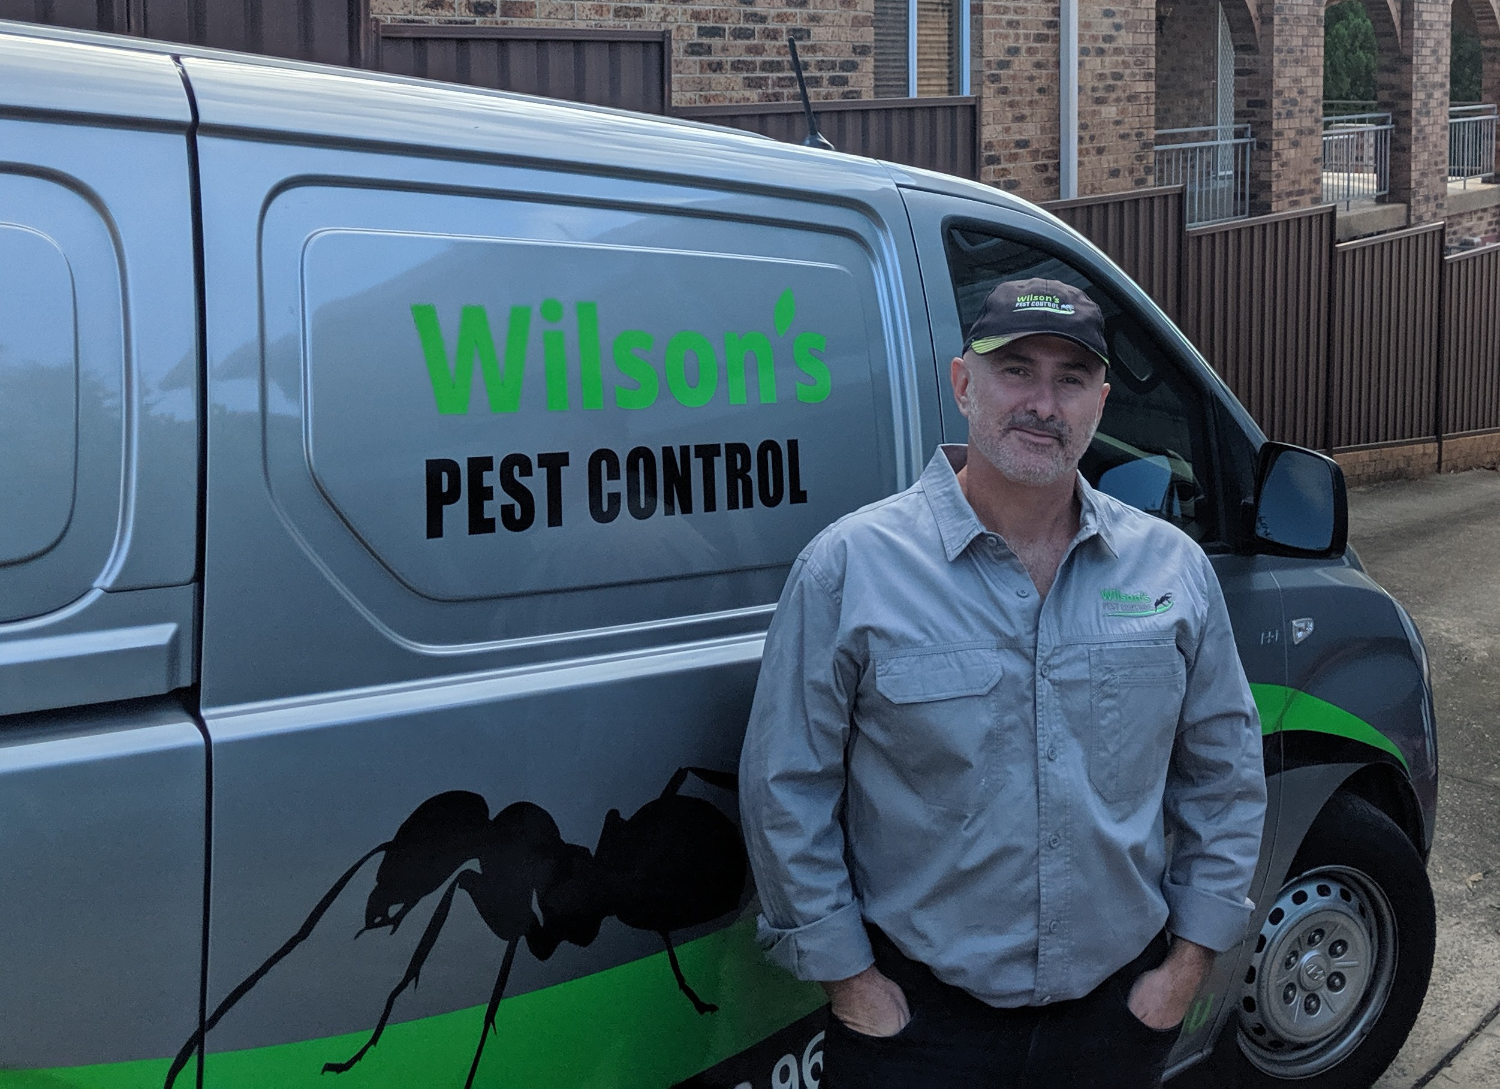 Henry of Wilsons Pest Control Gold Coats